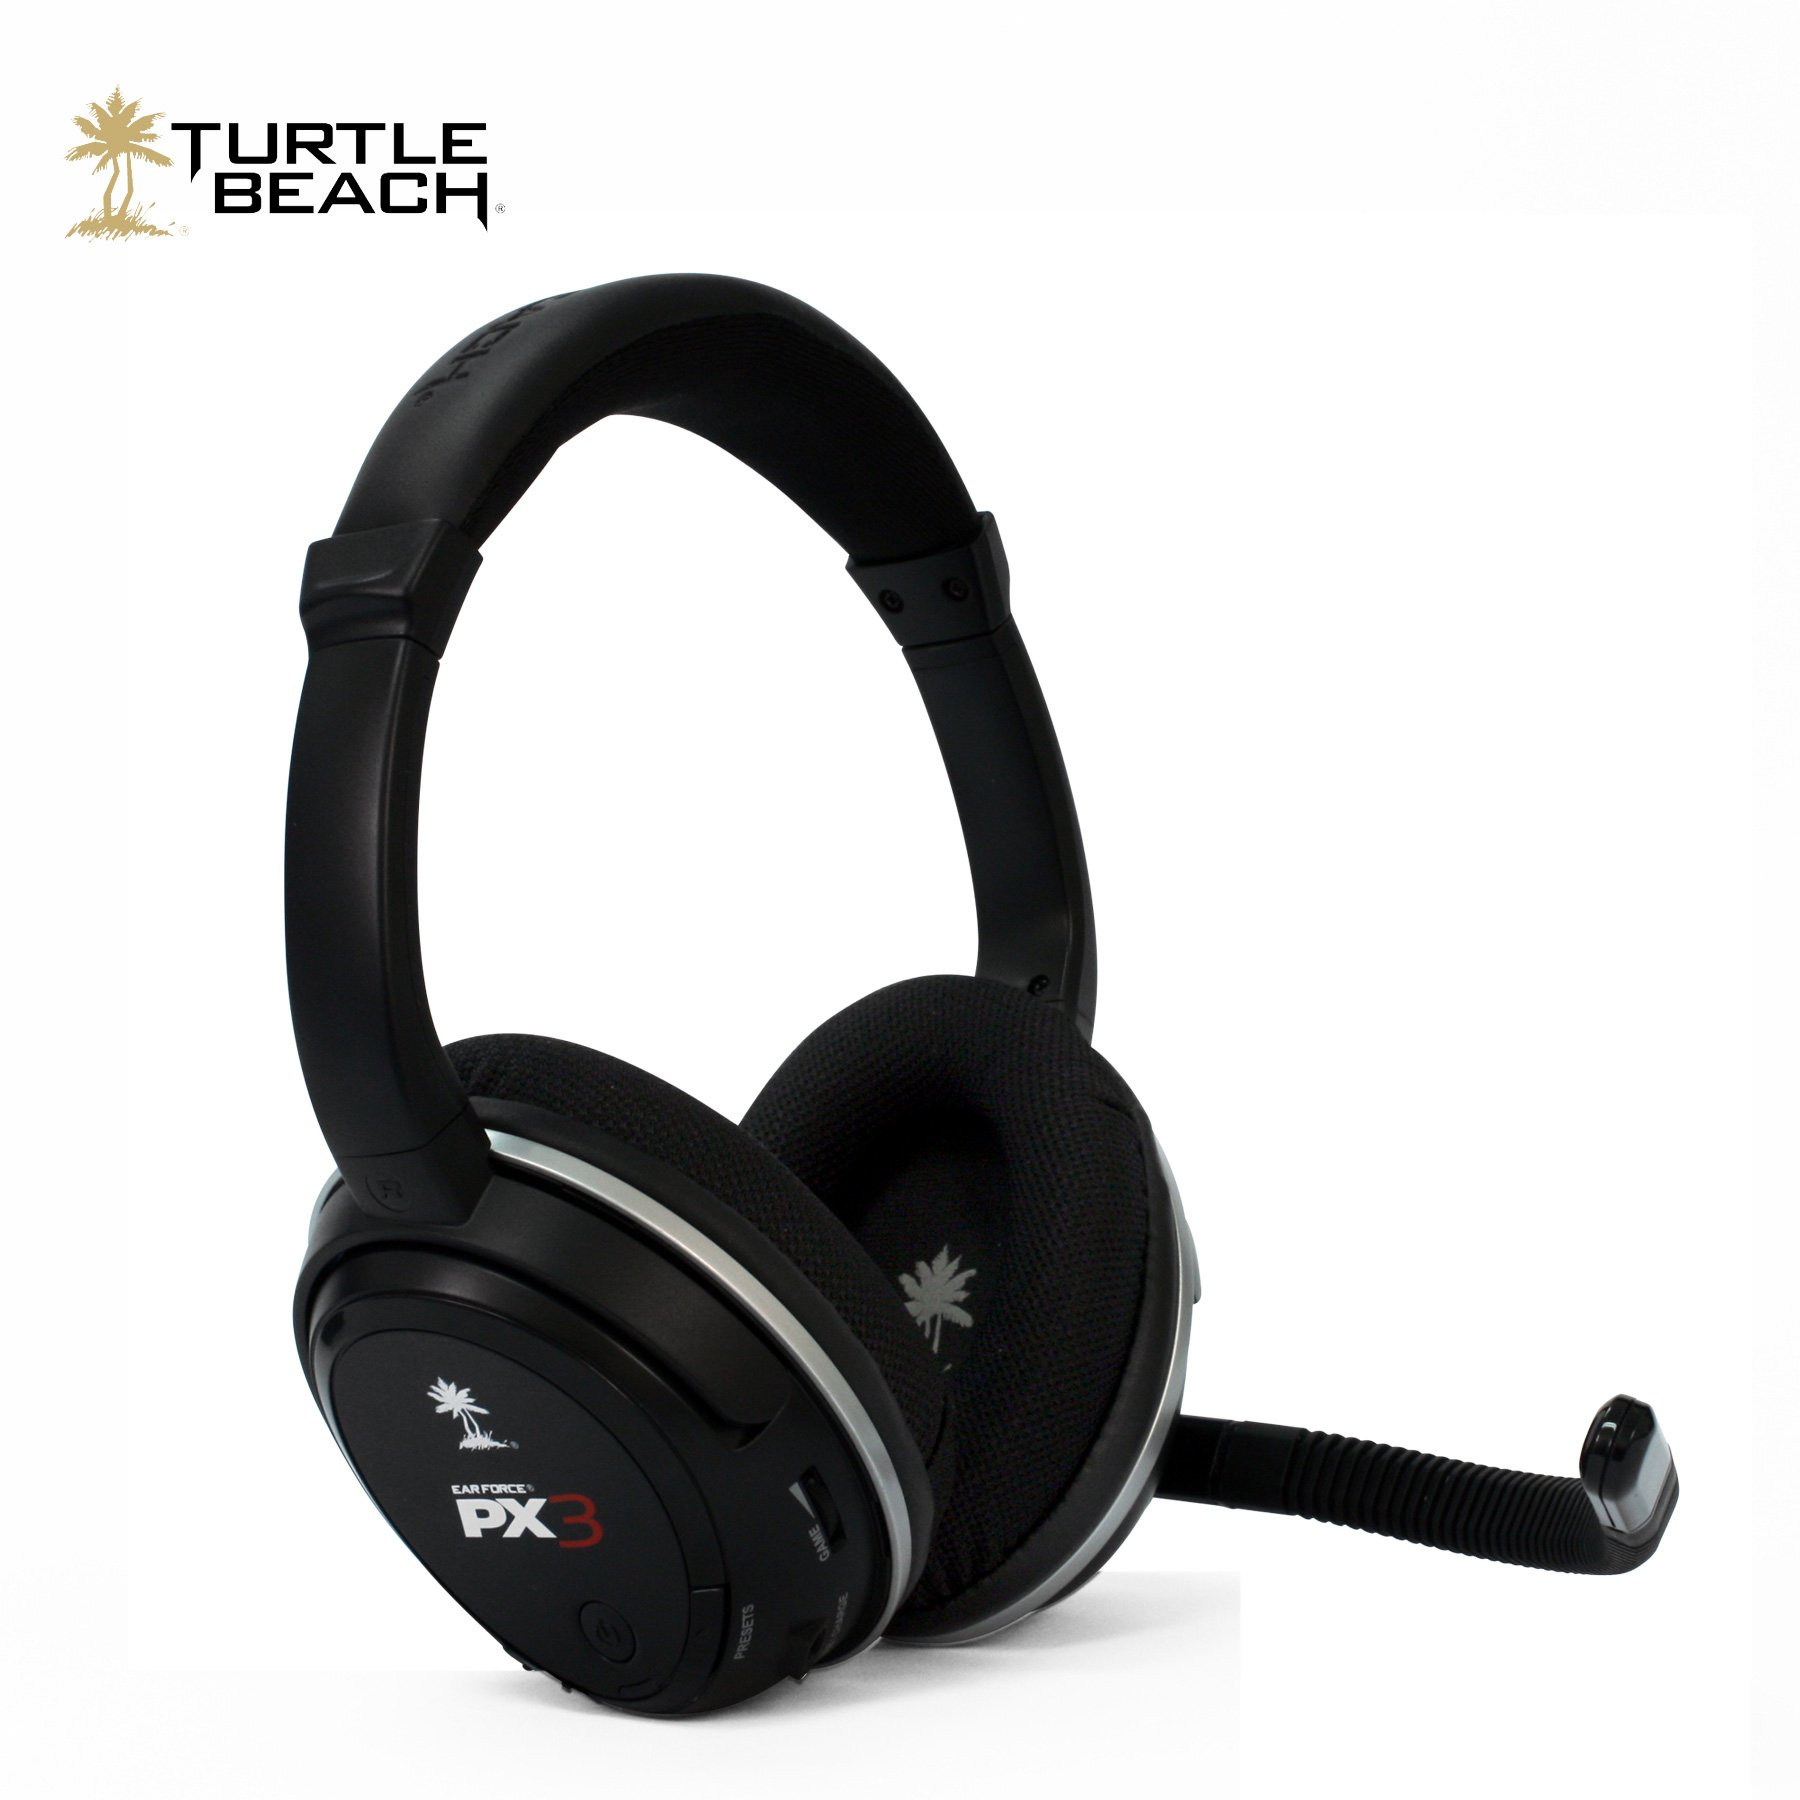 Turtle Beach - Ear Force PX3 - Programmable Wireless Gaming Headset - PS3, Xbox 360 by Turtle Beach